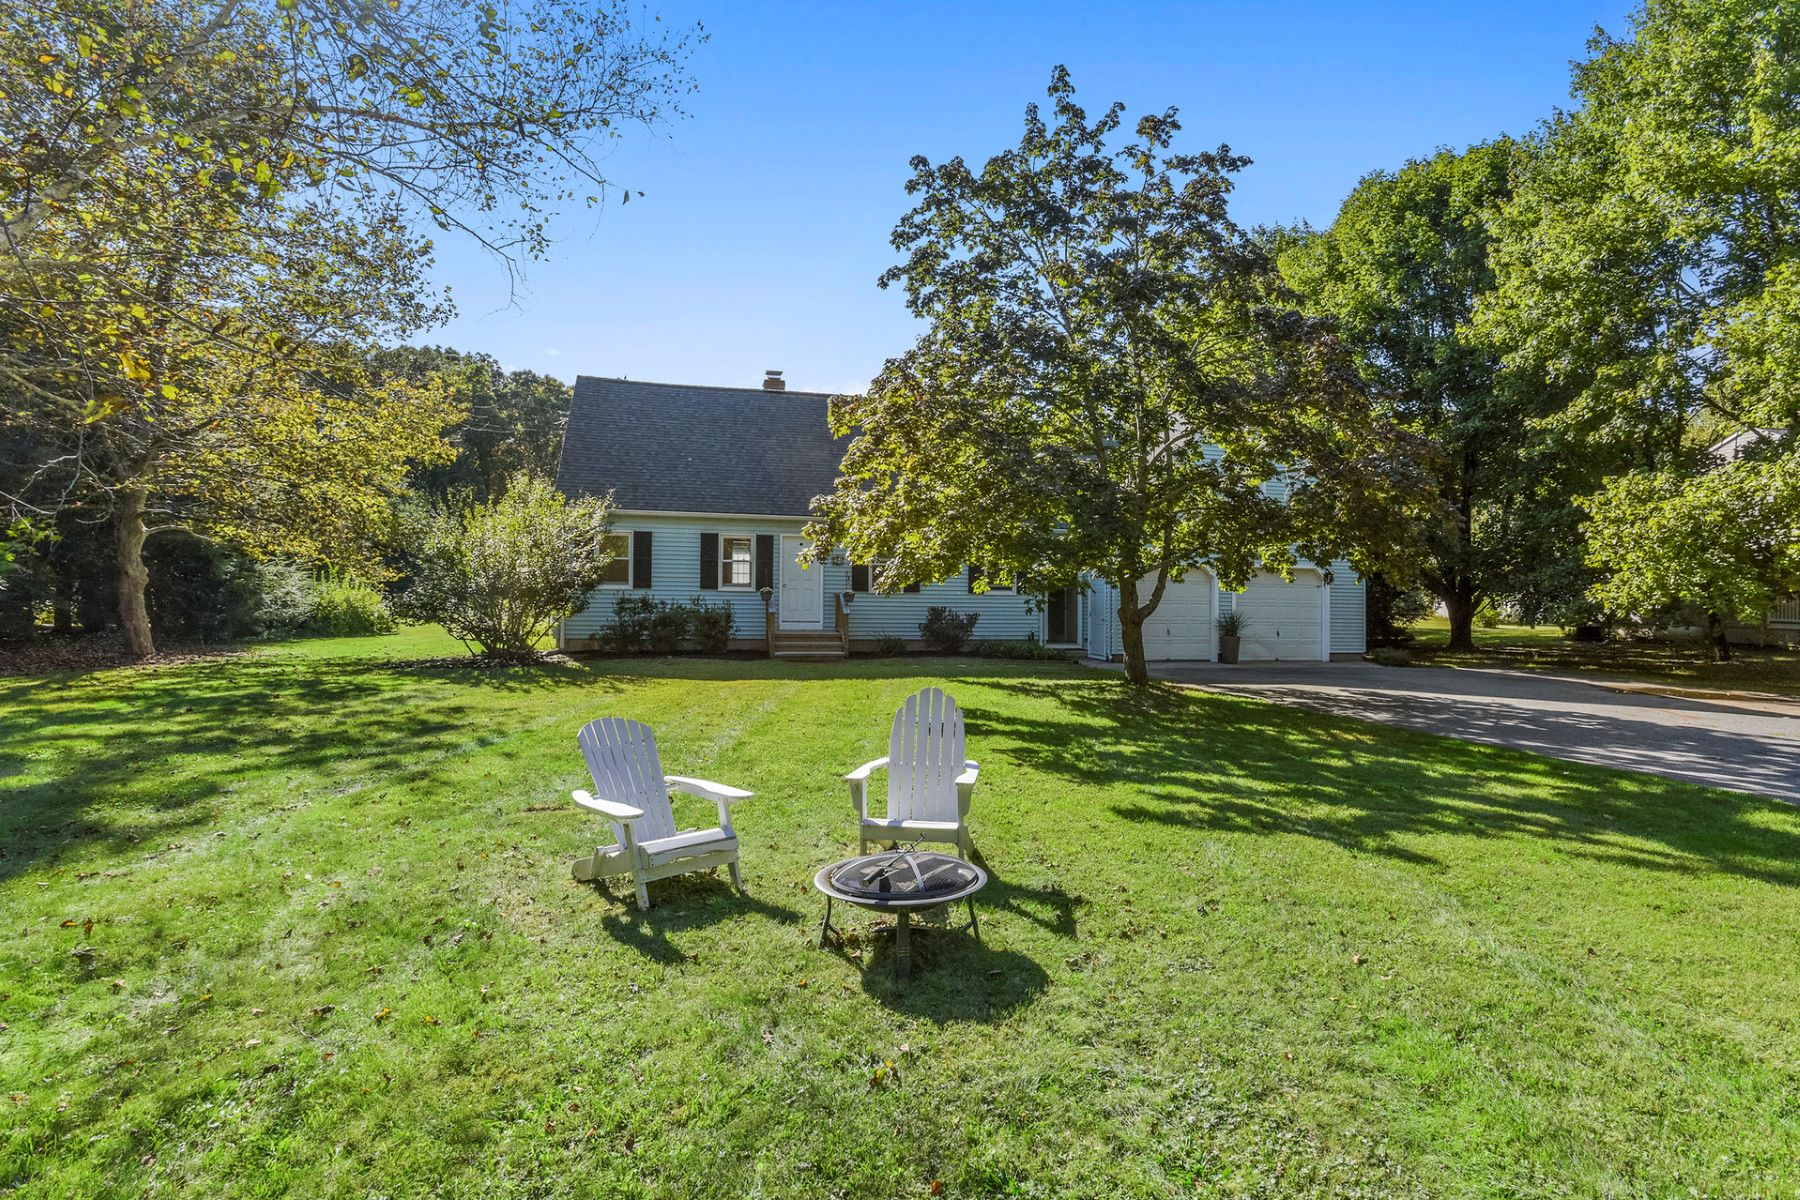 Single Family Homes for Sale at 21 Cream Pot Road 21 Cream Pot Rd Clinton, Connecticut 06413 United States